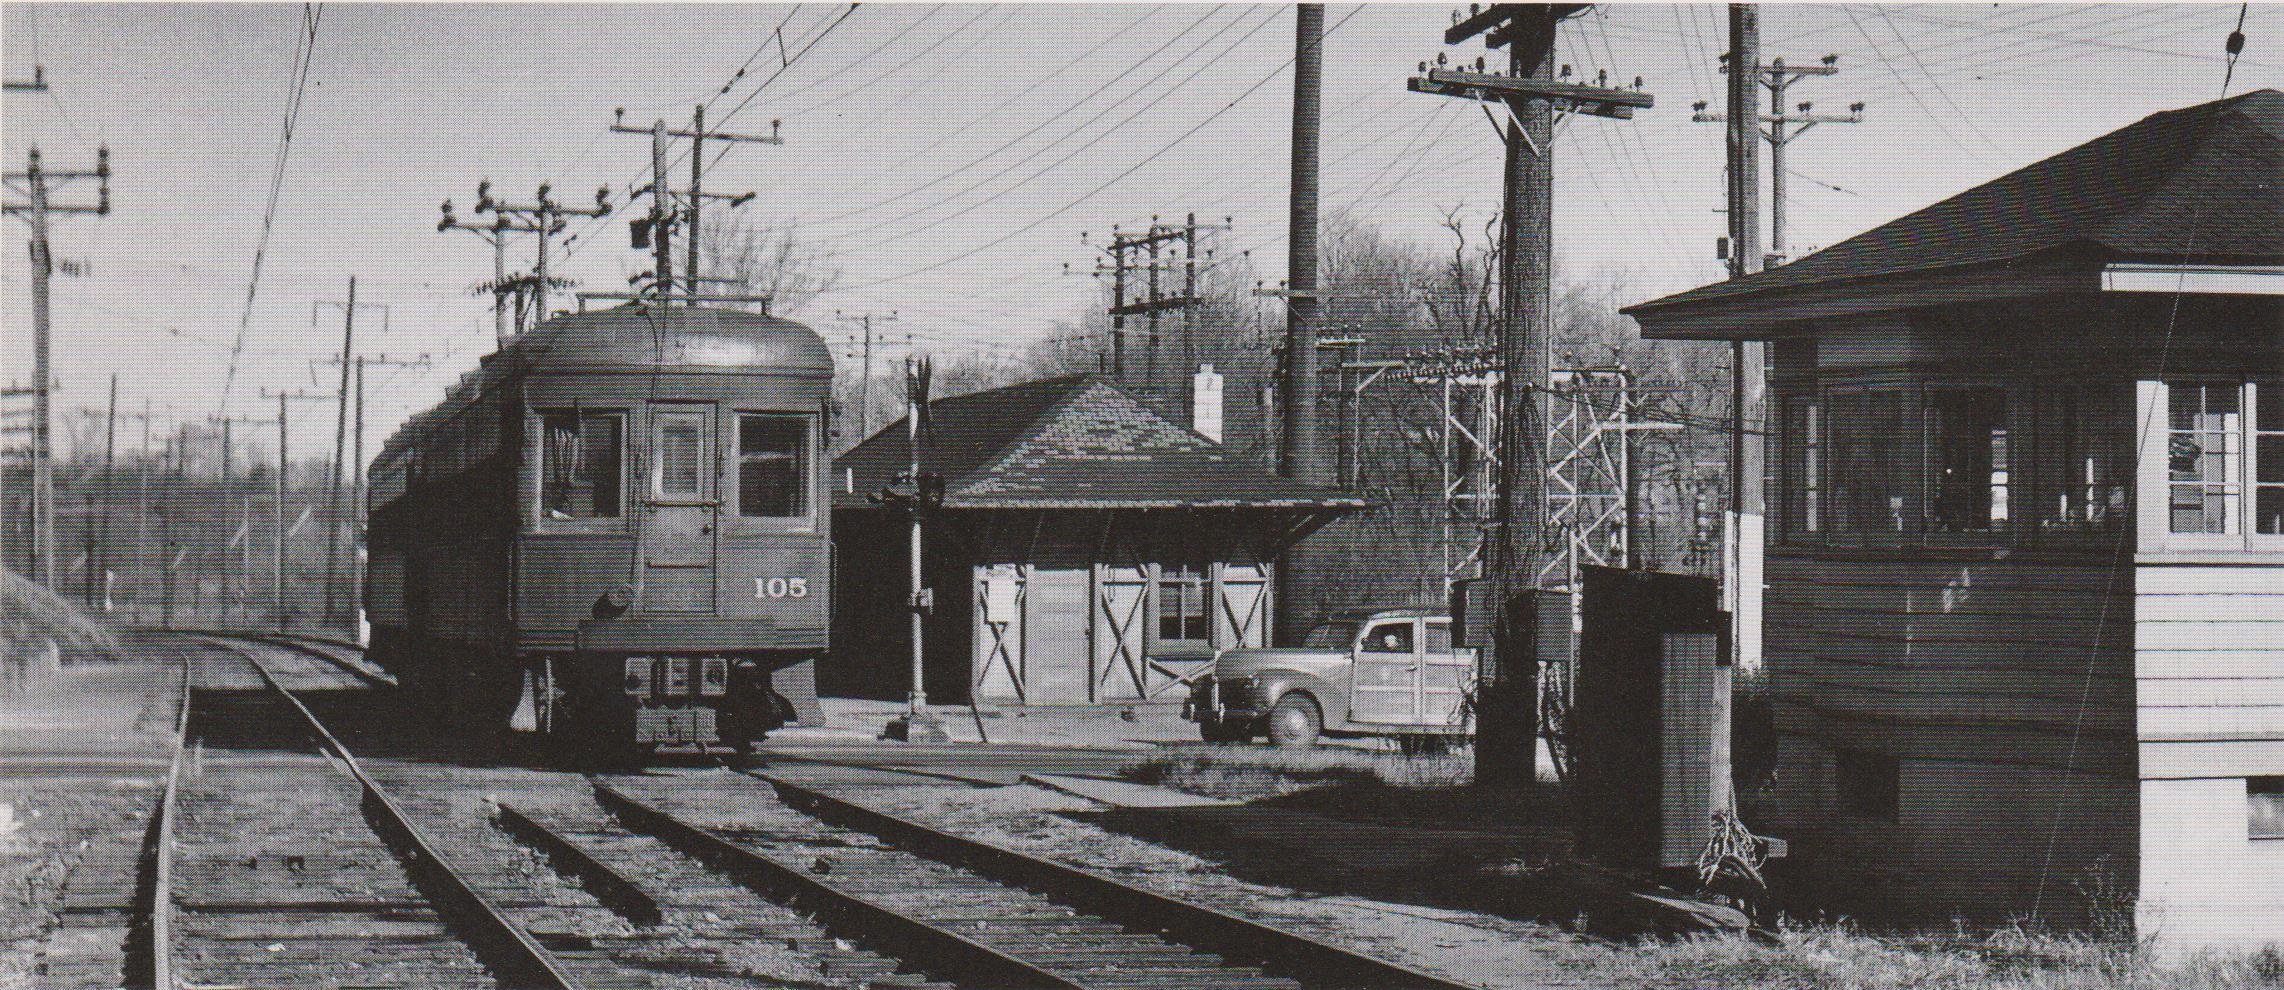 """Baltimore & Annapolis Car #105 at Linthicum Station. Linthicum, Maryland Date: November 1949. Source: W.D. Middleton from """"Baltimore Light Rail, Then & Now"""" by Herbert H. Harwood Jr."""